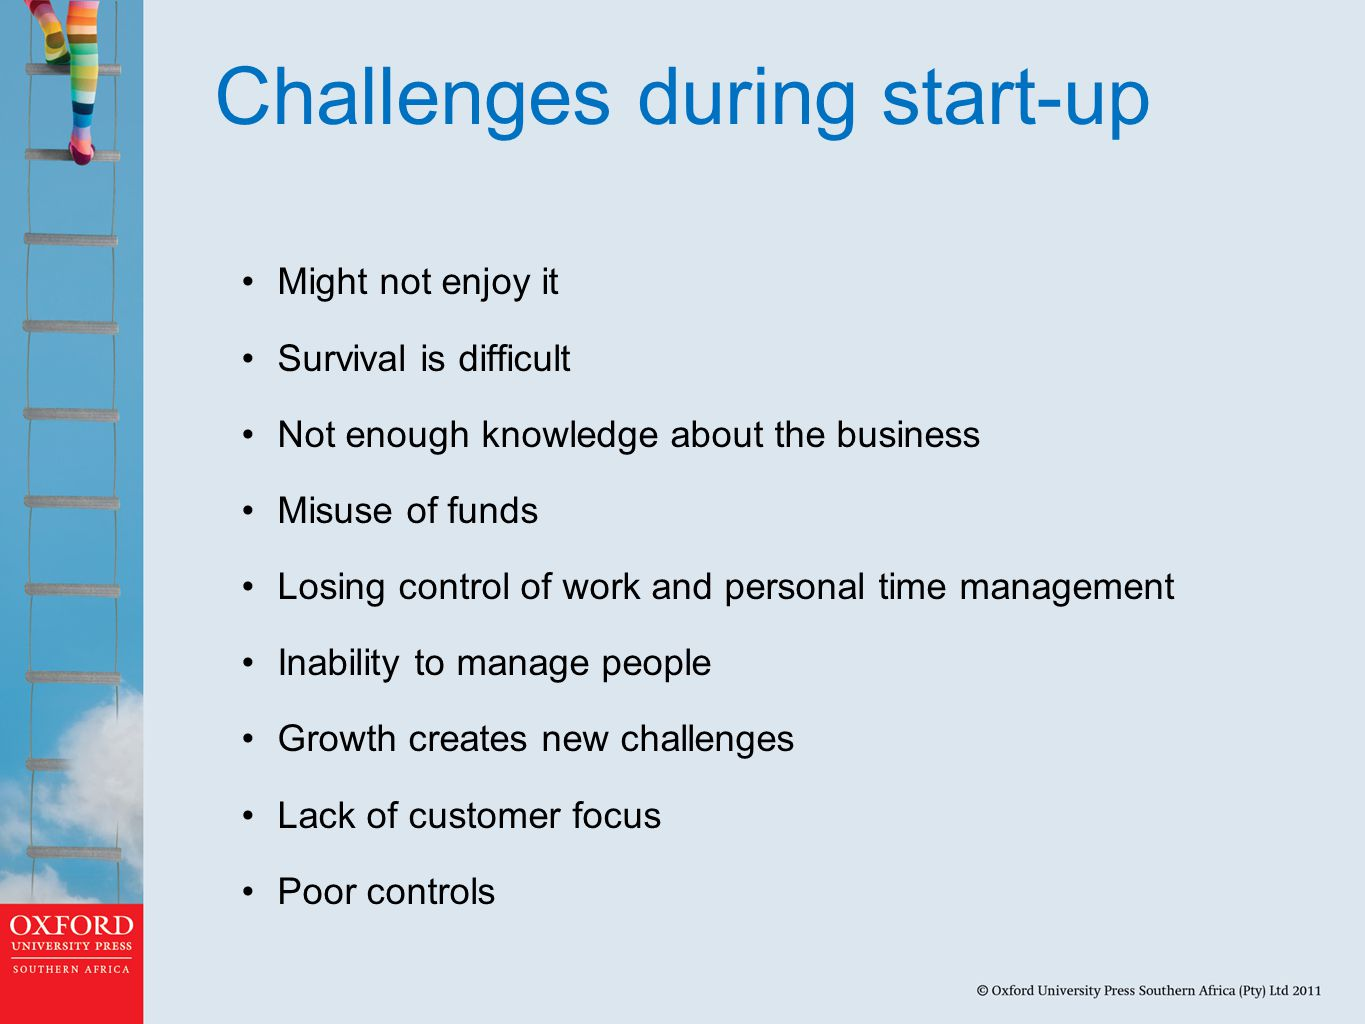 Challenges during start-up Might not enjoy it Survival is difficult Not enough knowledge about the business Misuse of funds Losing control of work and personal time management Inability to manage people Growth creates new challenges Lack of customer focus Poor controls